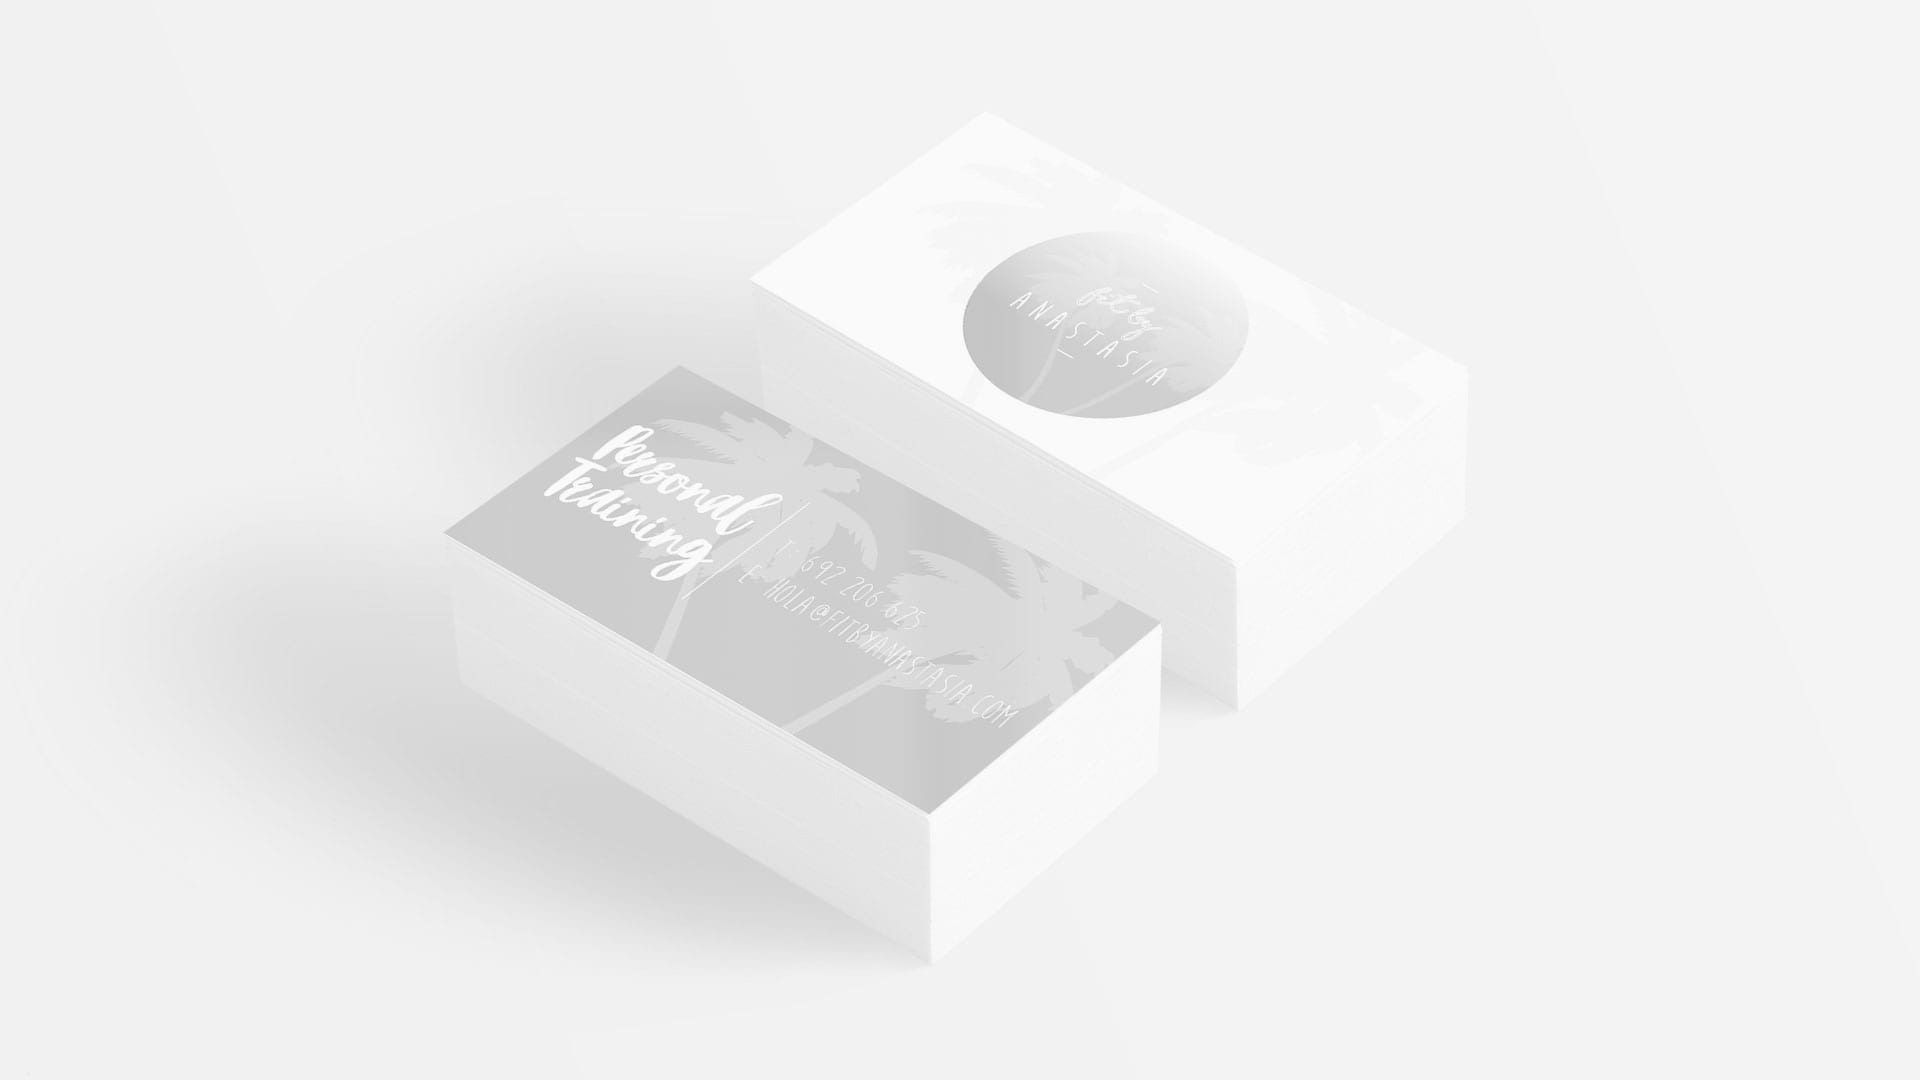 logo design on business cards mockup 2